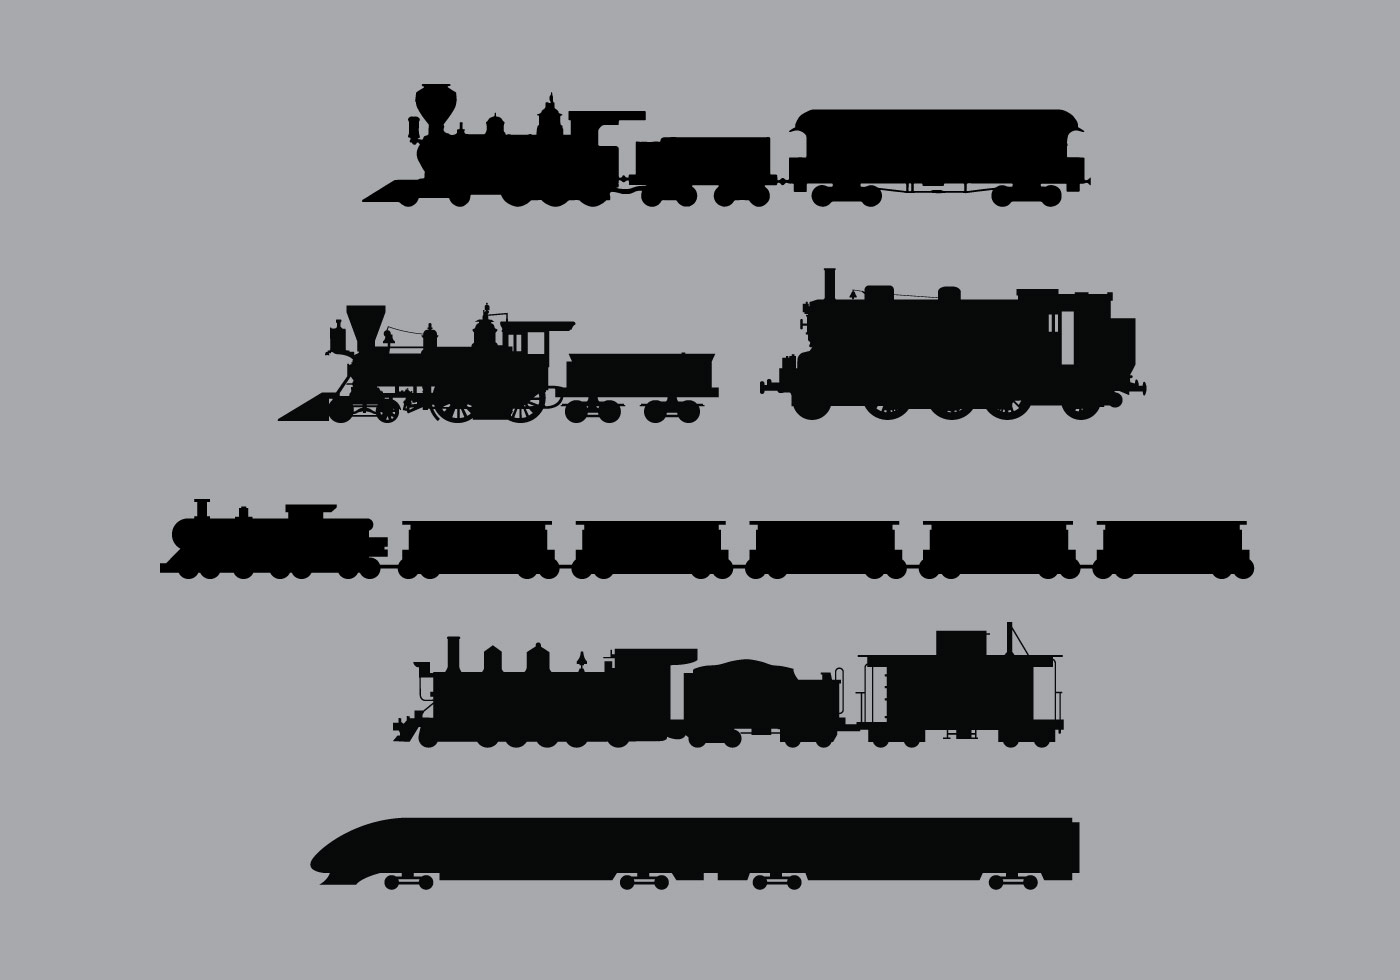 Train Vector Silhouettes - Download Free Vector Art, Stock ...